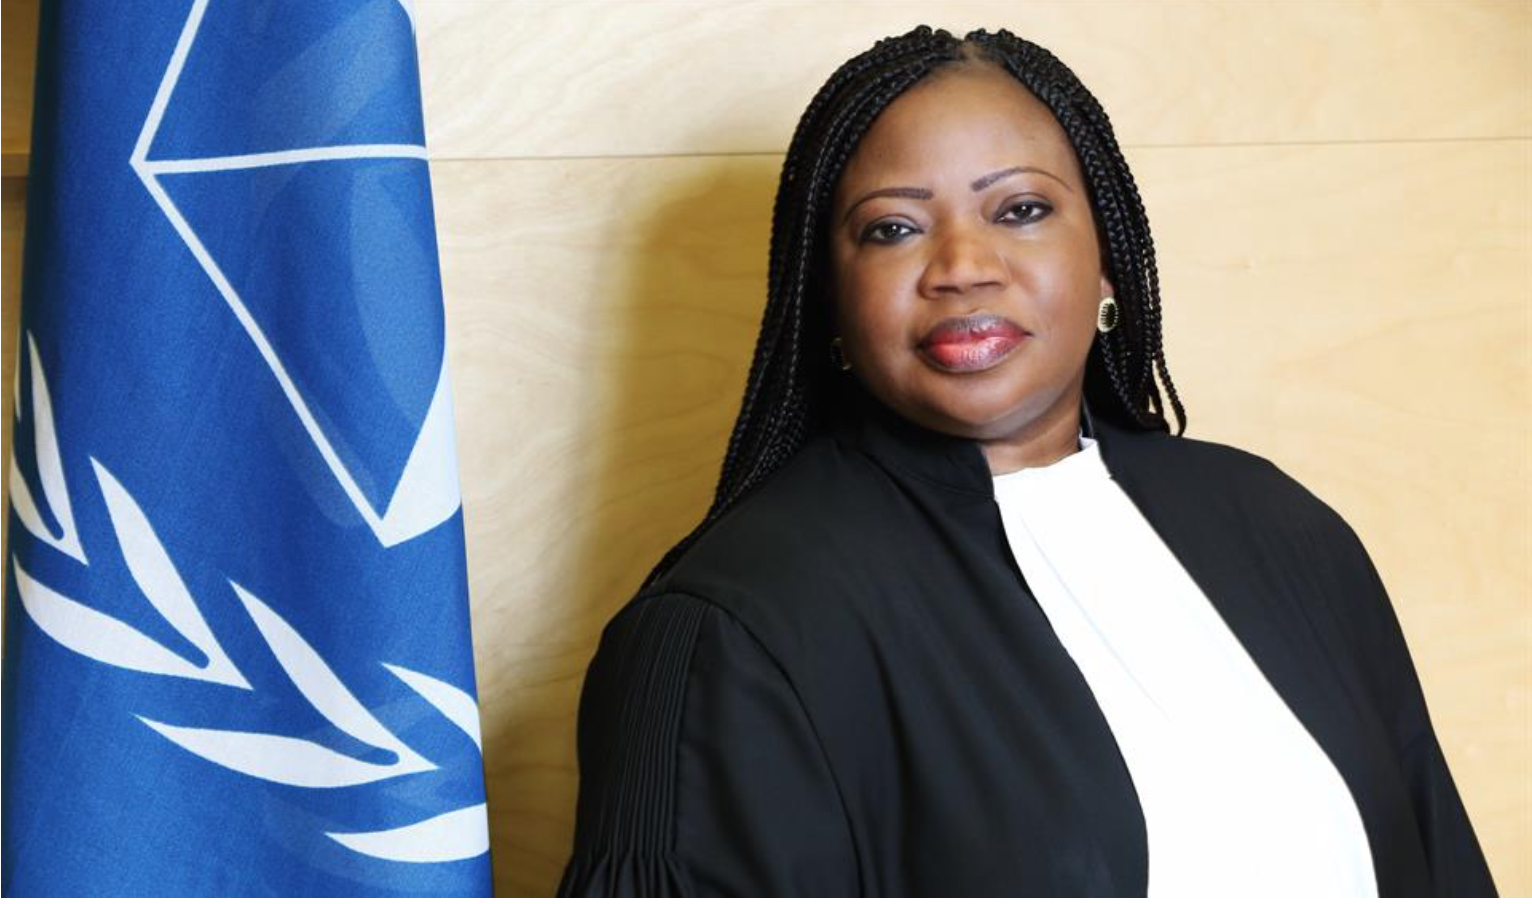 International Criminal Court Prosecutor Fatou Bensouda banned from entering the US